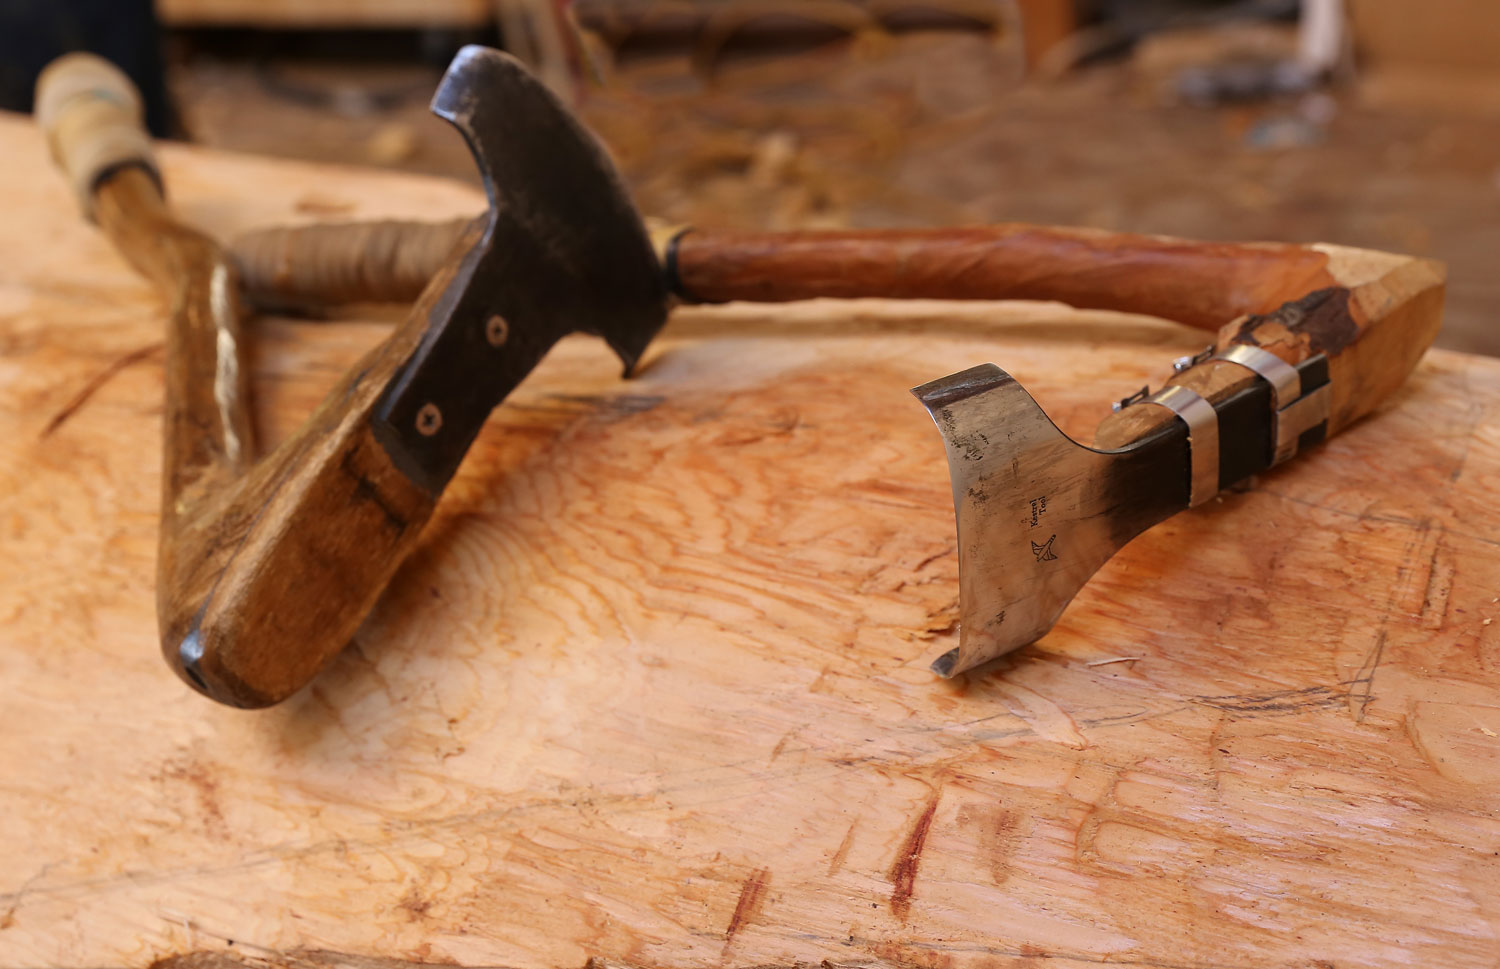 The adze head is attached to a handle made from a natural bend in an alder.